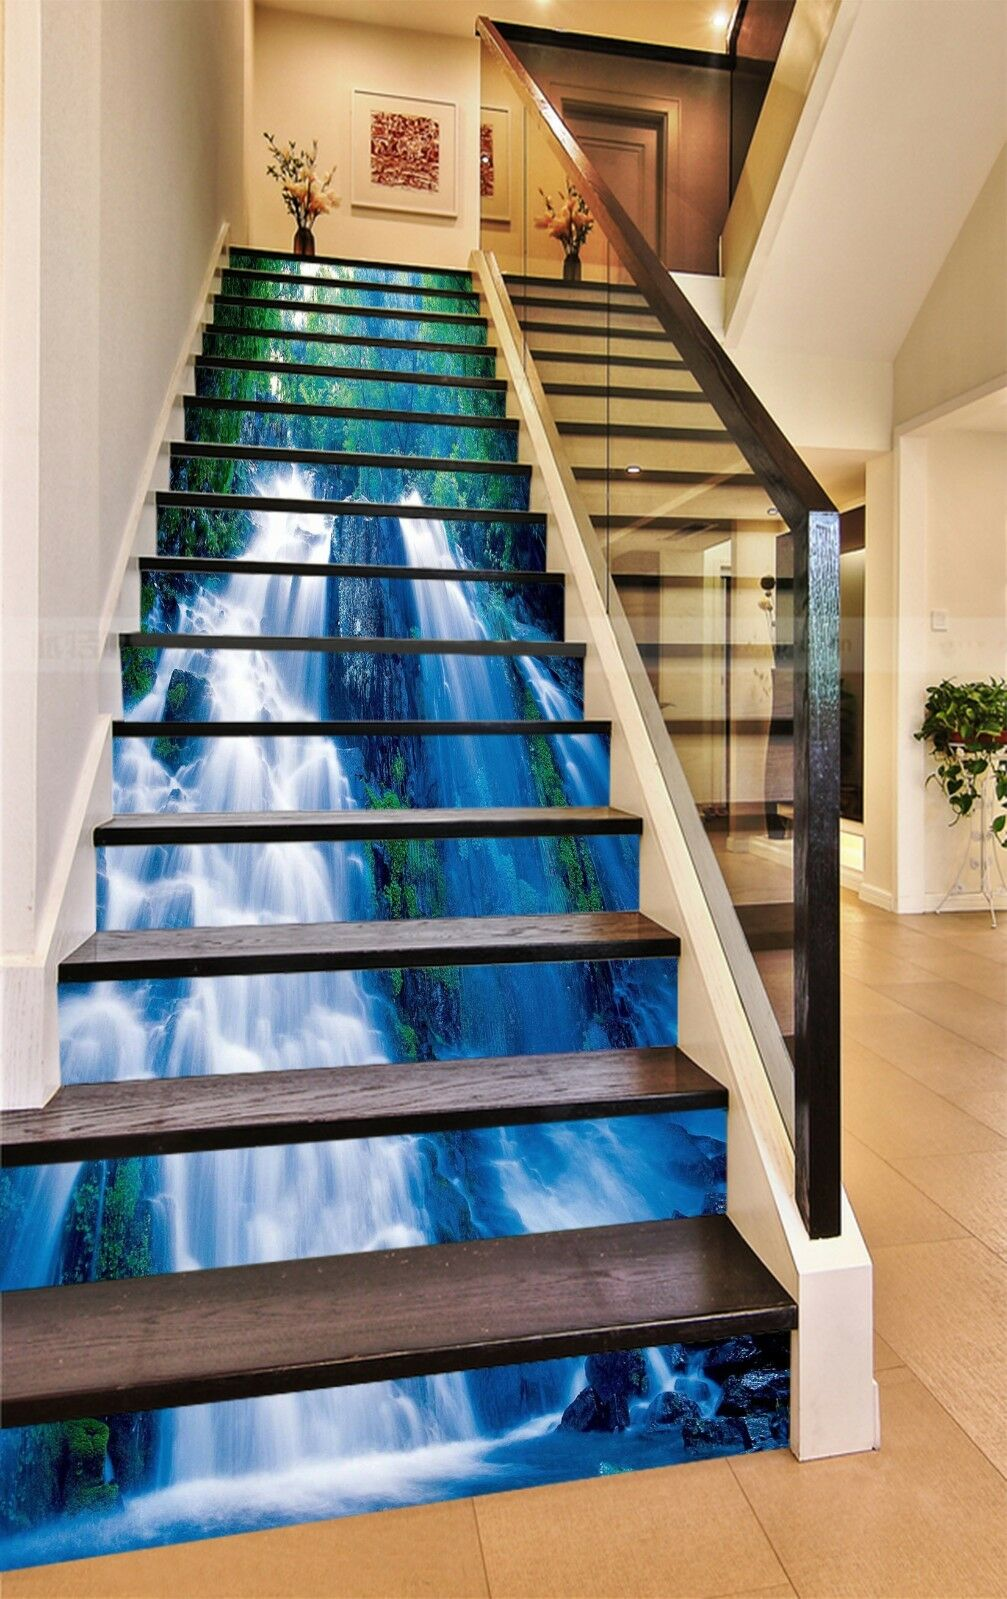 3D Blau Cascade 7 Stair Risers Decoration Photo Mural Vinyl Decal Wallpaper UK